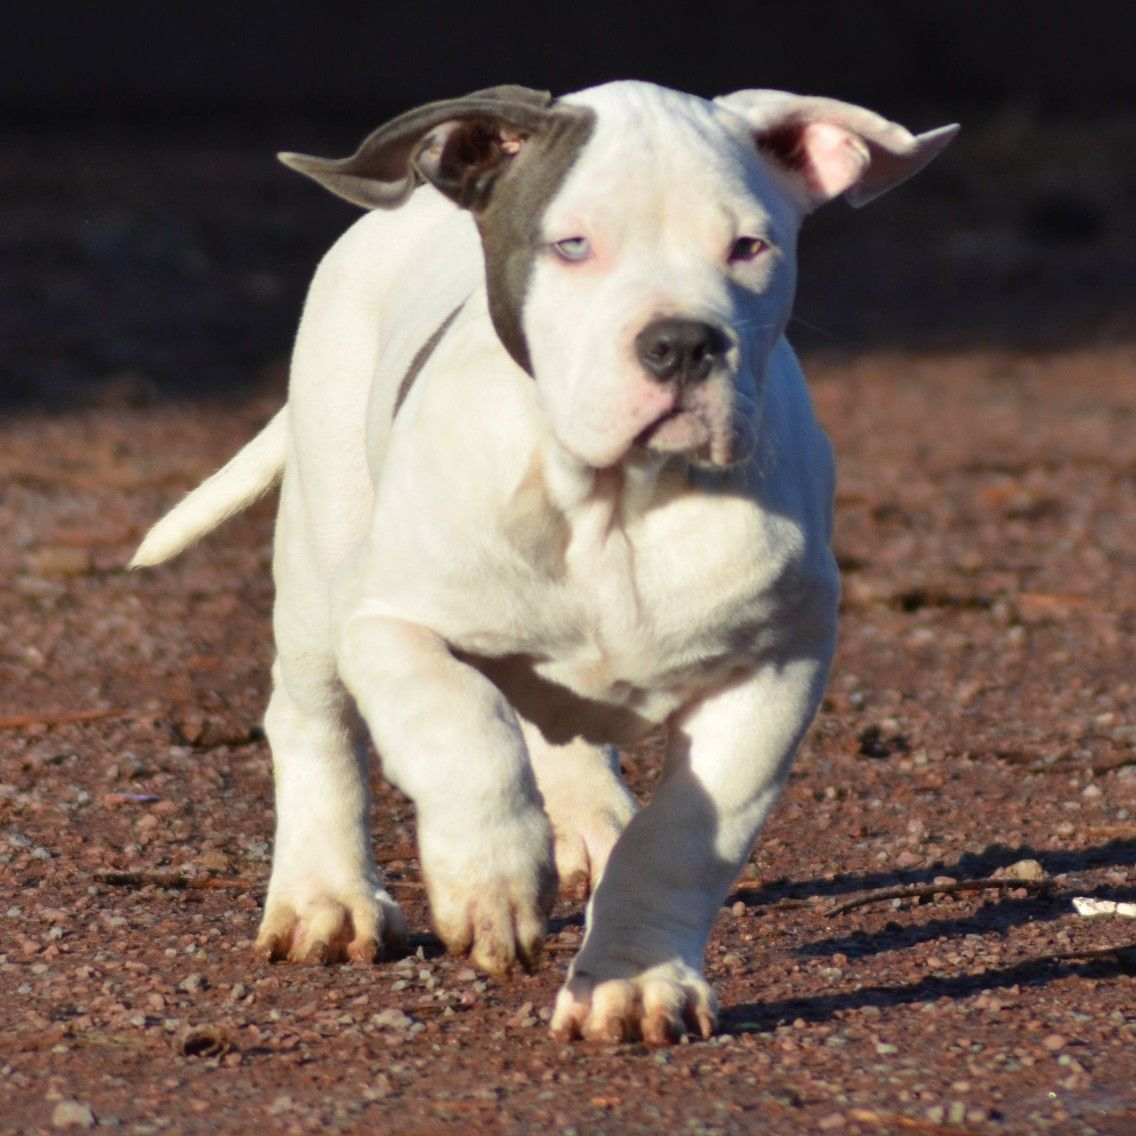 Pitbull Chiot Puppy Puppies Pero Cane American Bully Xl Xxl Bully Pitbull A Vendre For Sale France Belgique Kennel Elevage Bully Dog Bully Pitbull Bully Breeds